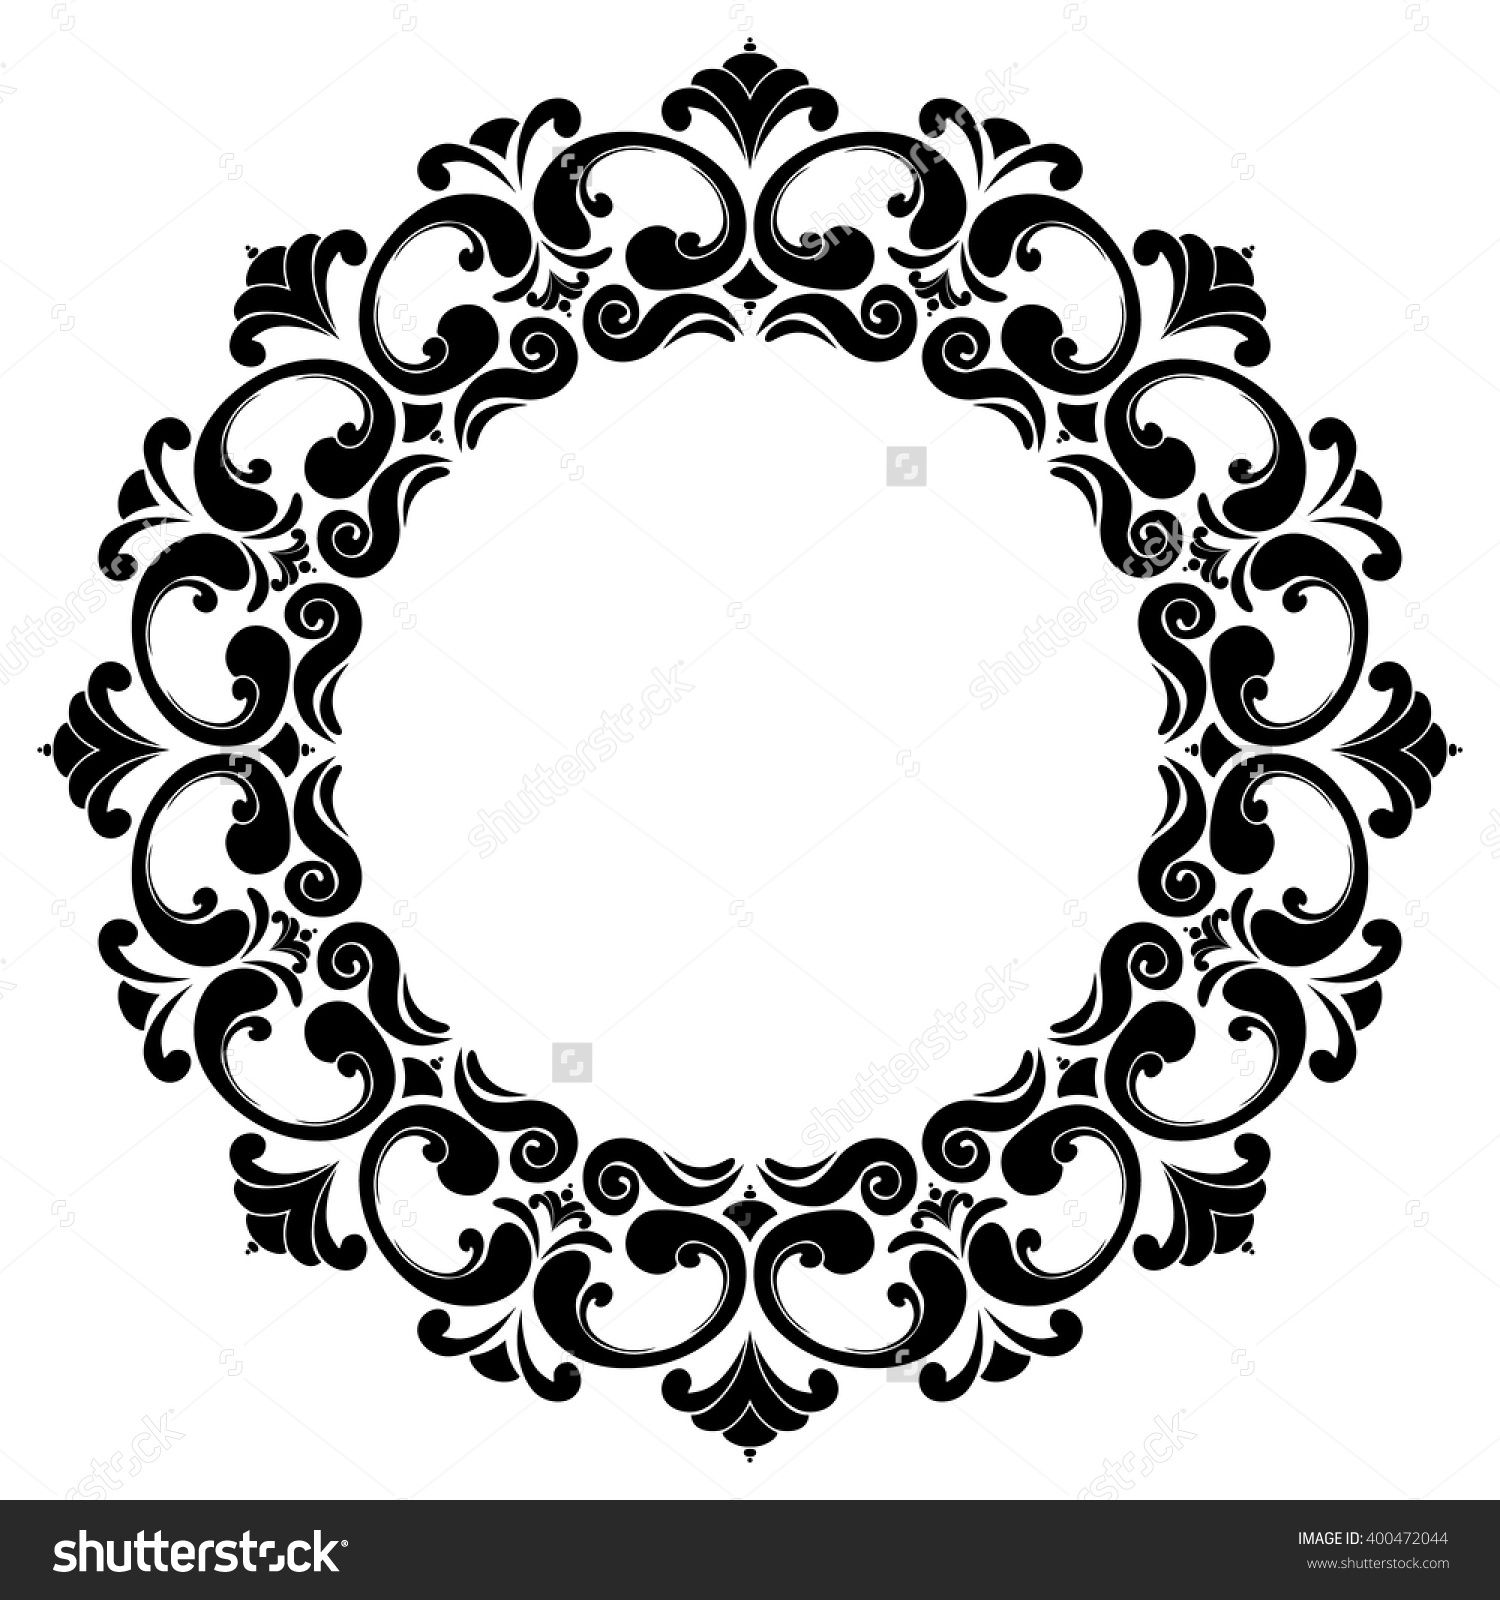 Round Black And White Frame With Curls Baroque Decorative Element